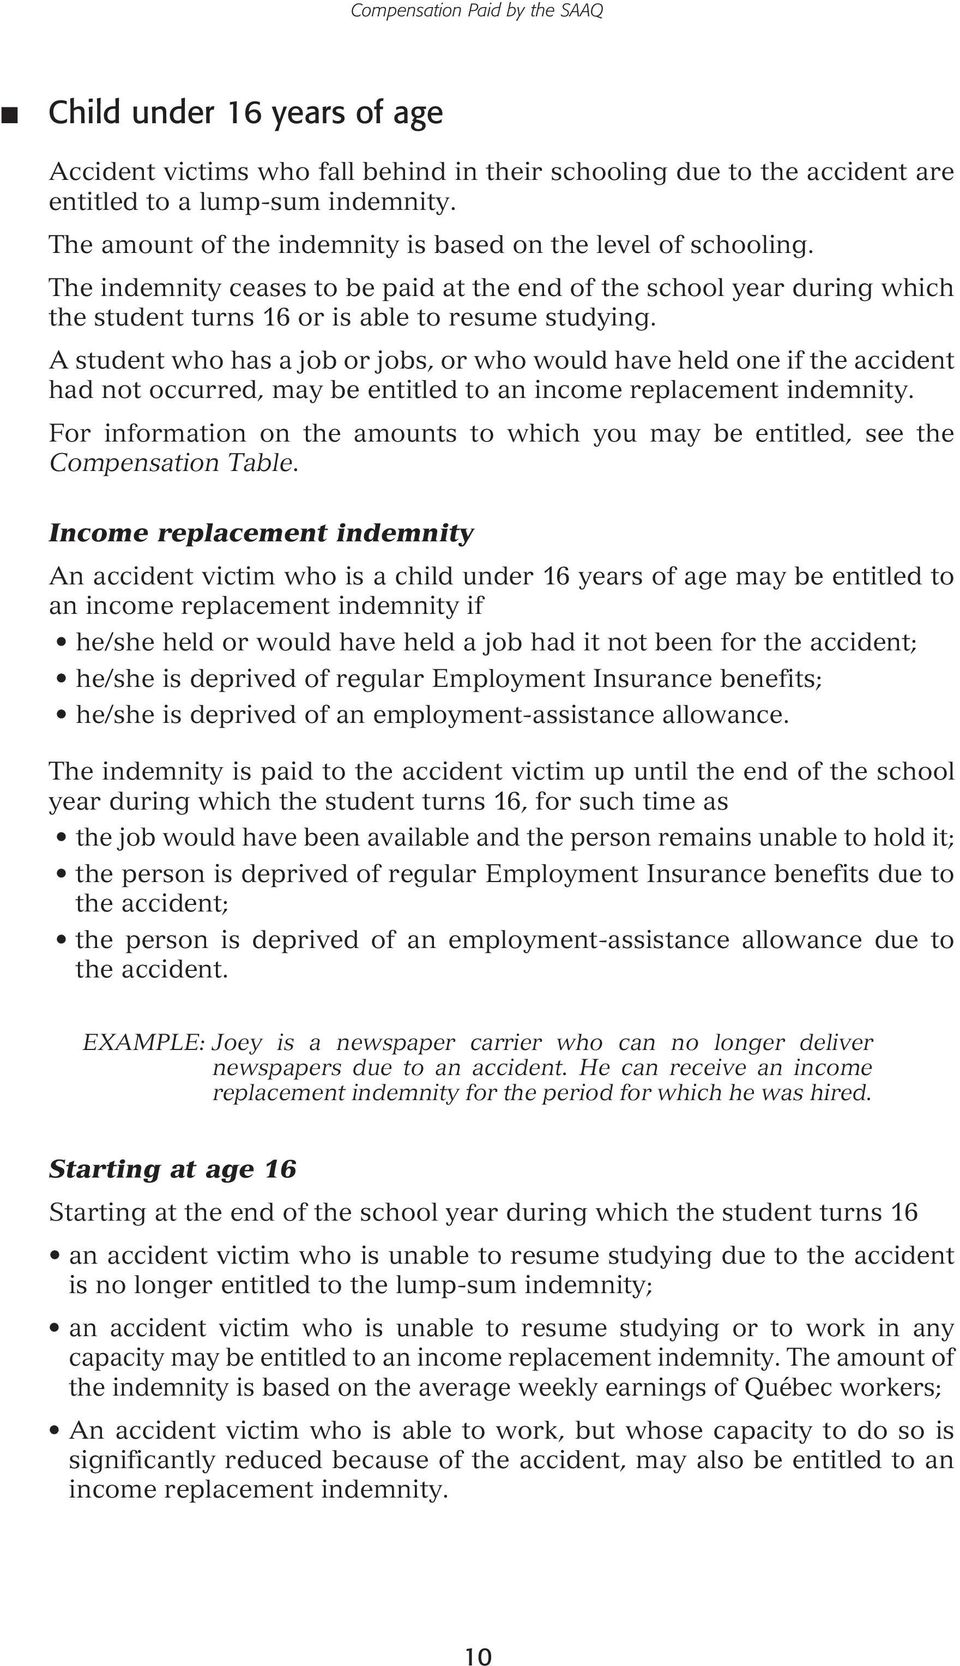 A student who has a job or jobs, or who would have held one if the accident had not occurred, may be entitled to an income replacement indemnity.